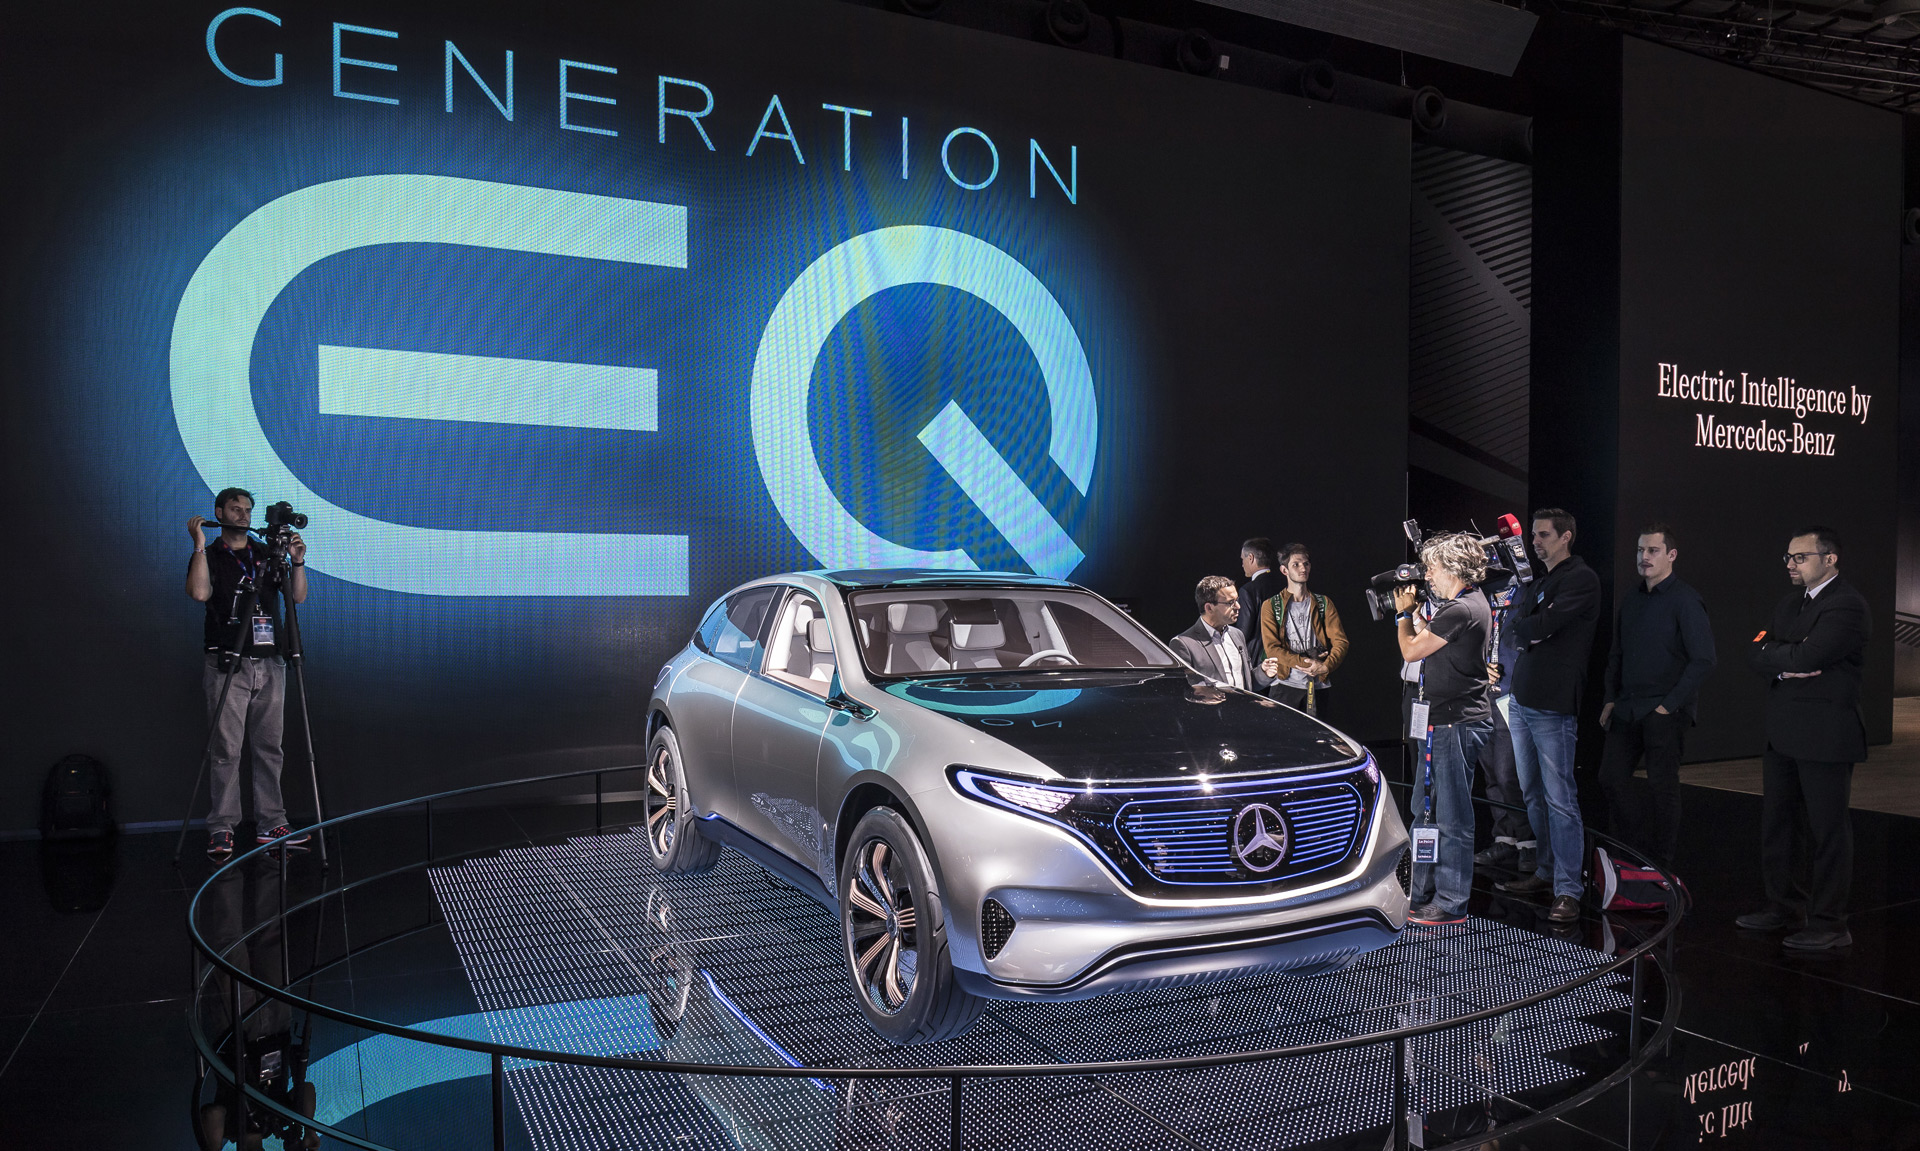 2020 Paris motor show isn't canceled, but will get a rethink due to coronavirus